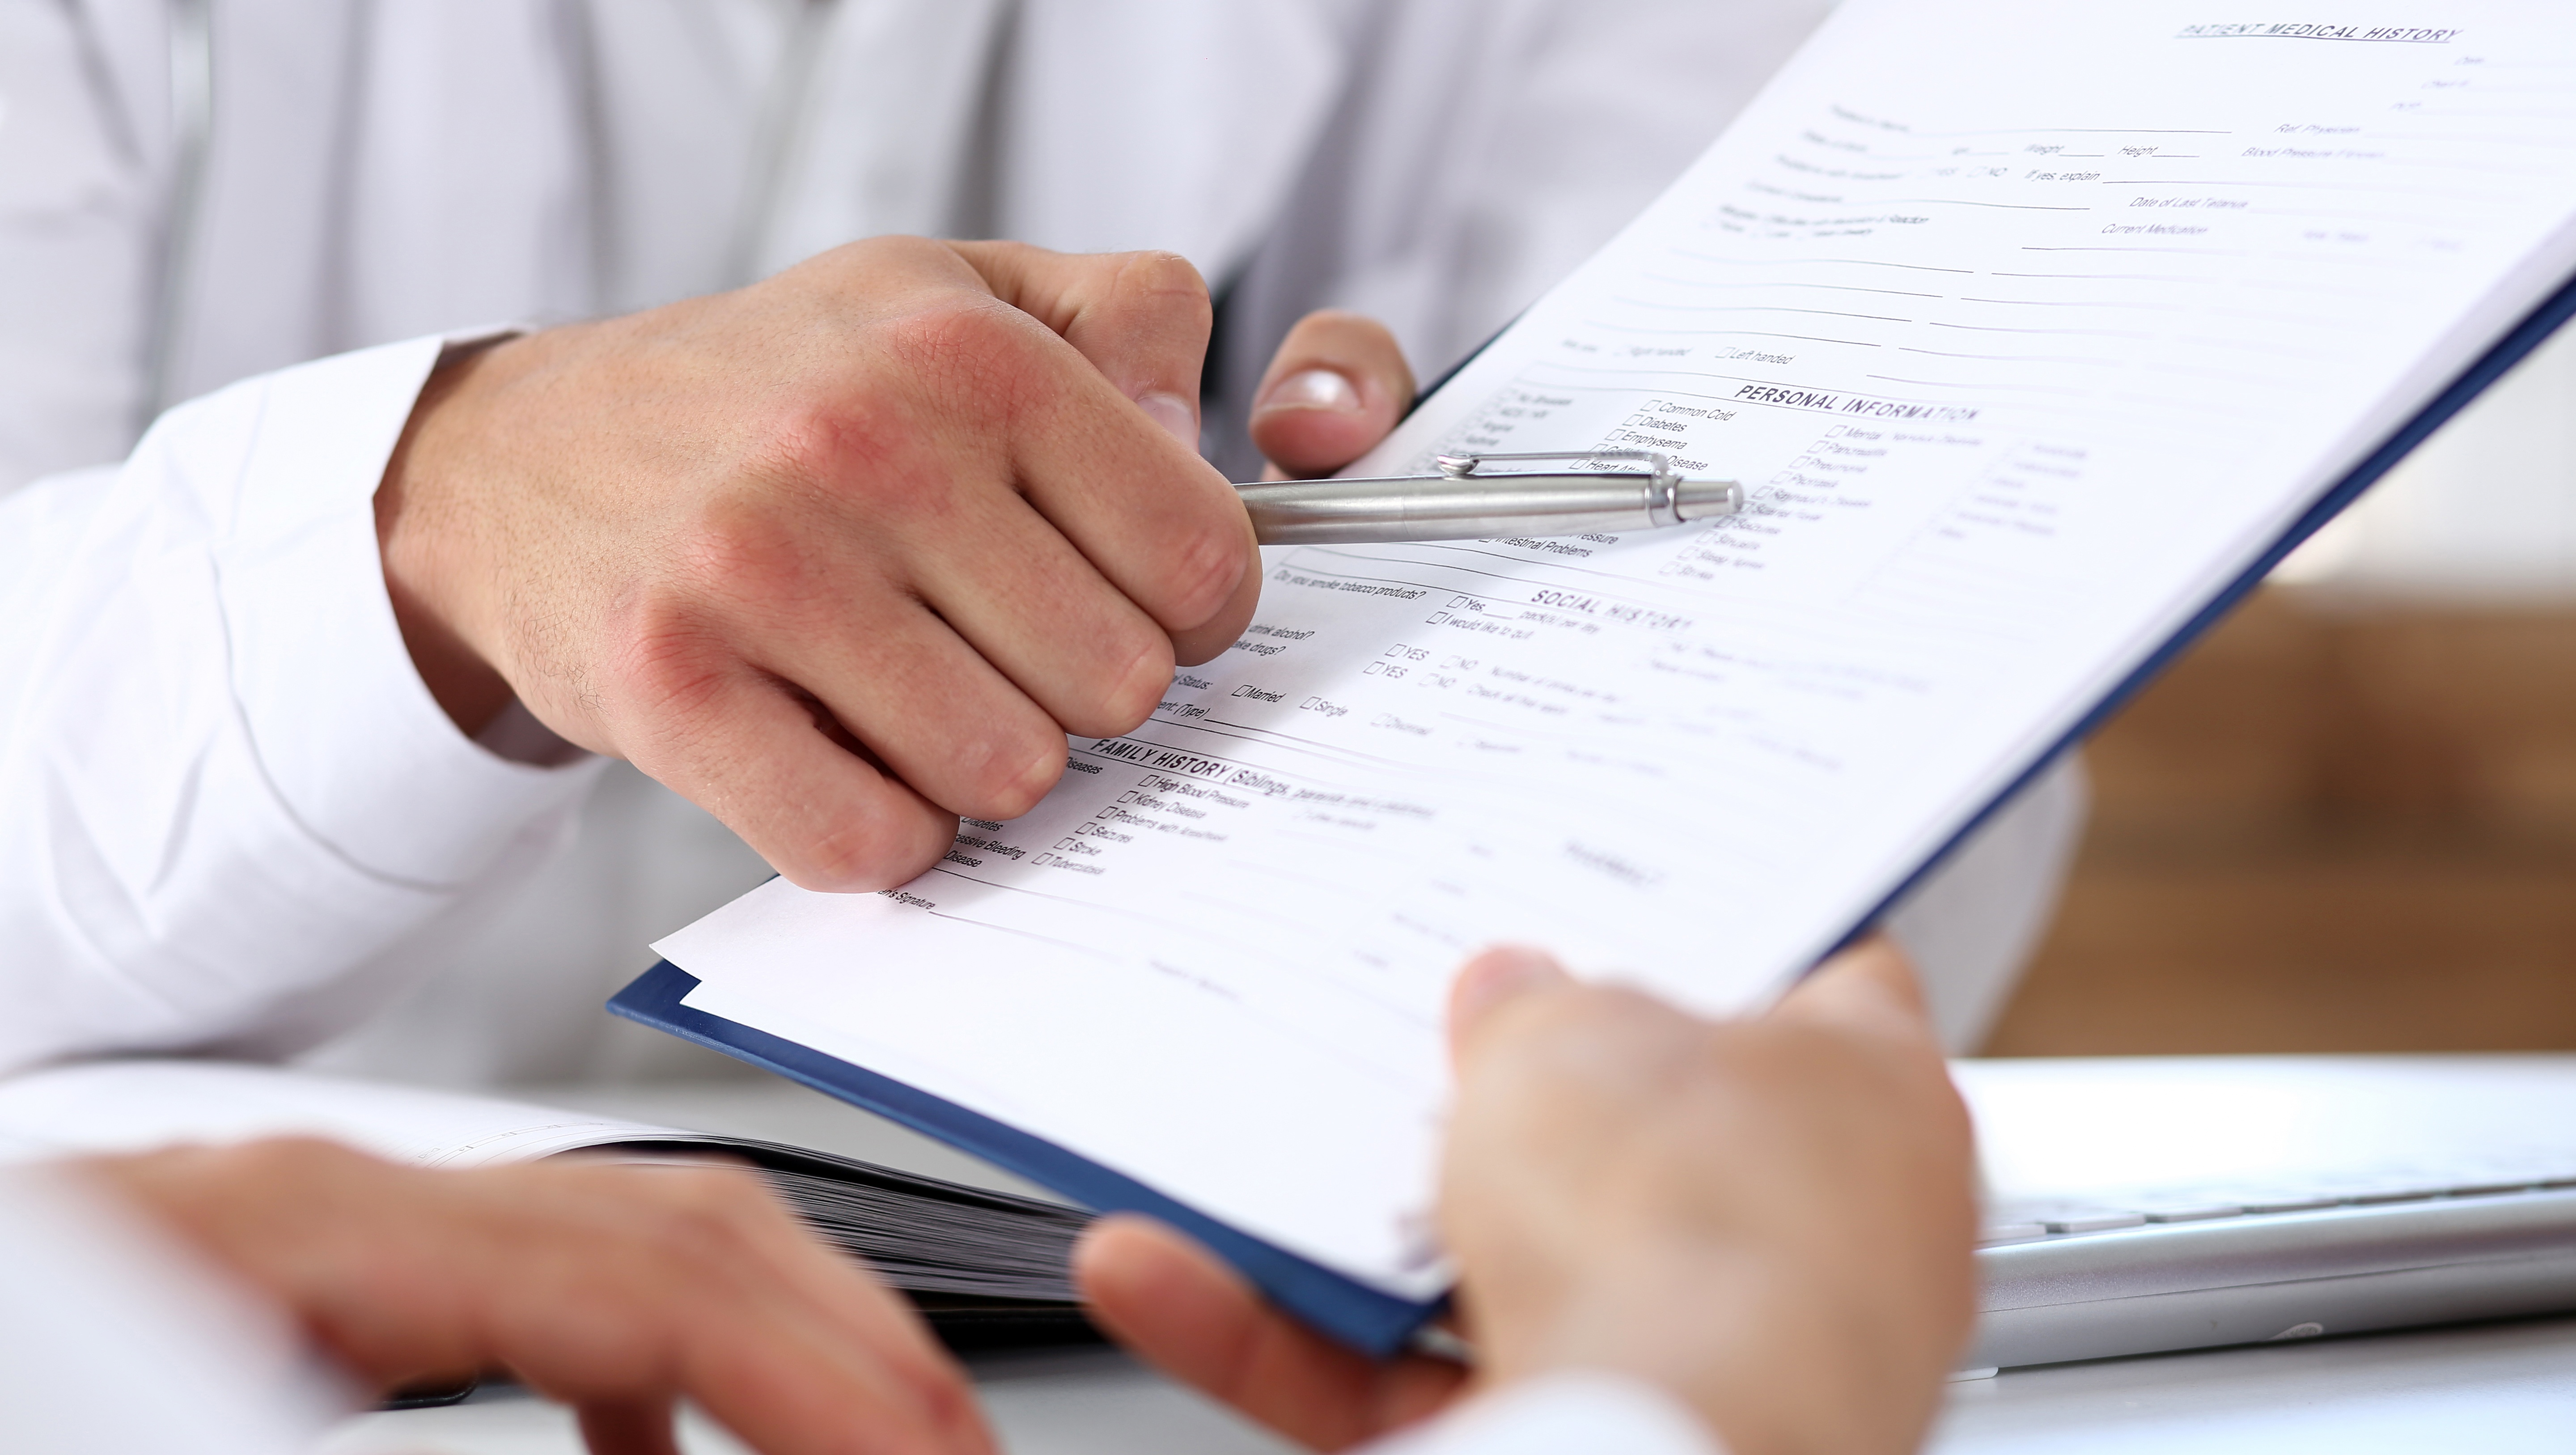 Top Coding Errors for Physician Practices